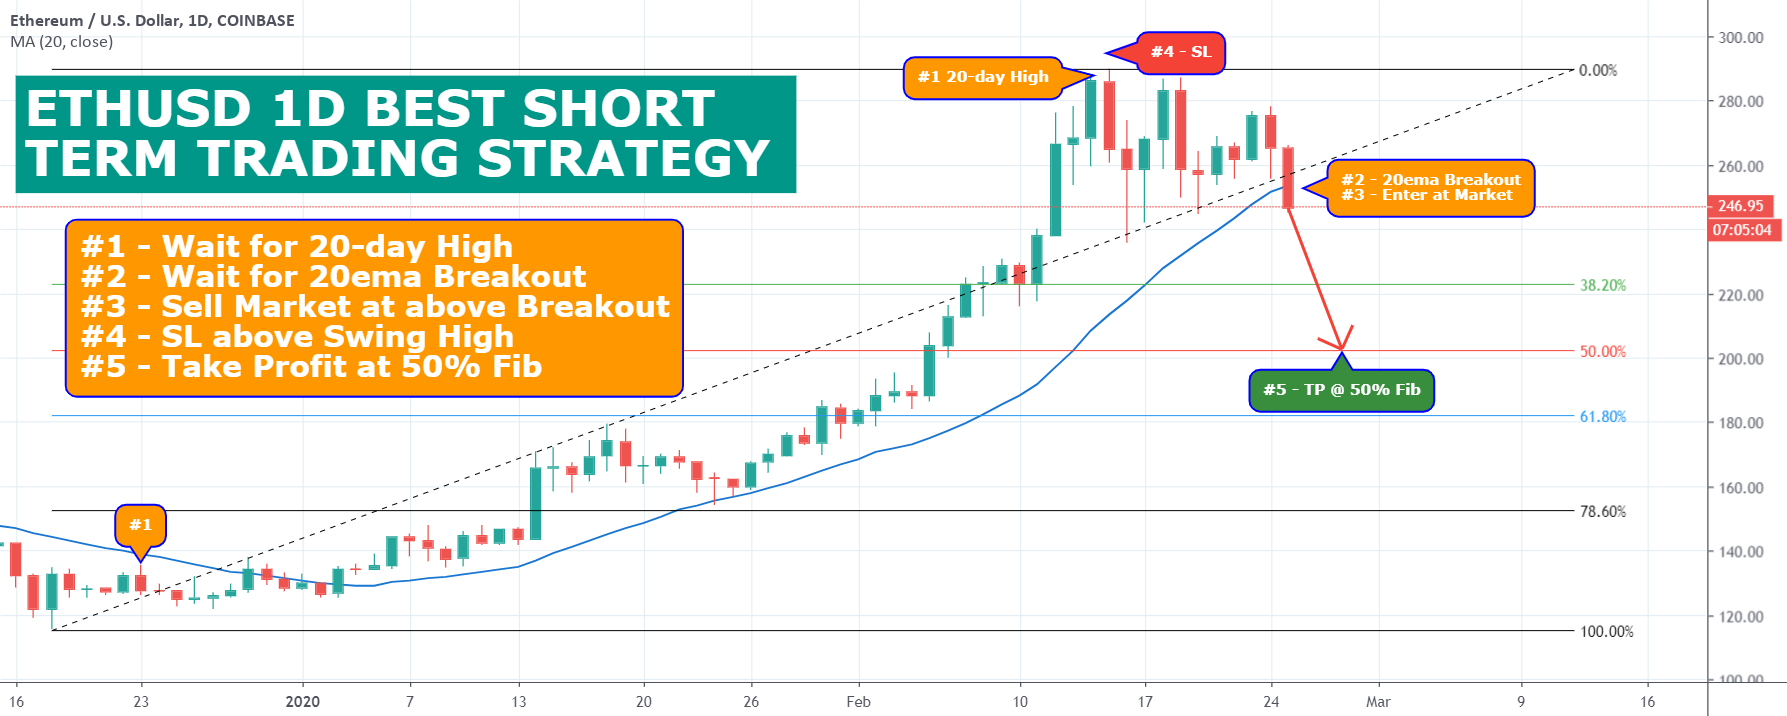 ETHUSD 1D BEST SHORT TERM TRADING STRATEGY for COINBASE ...